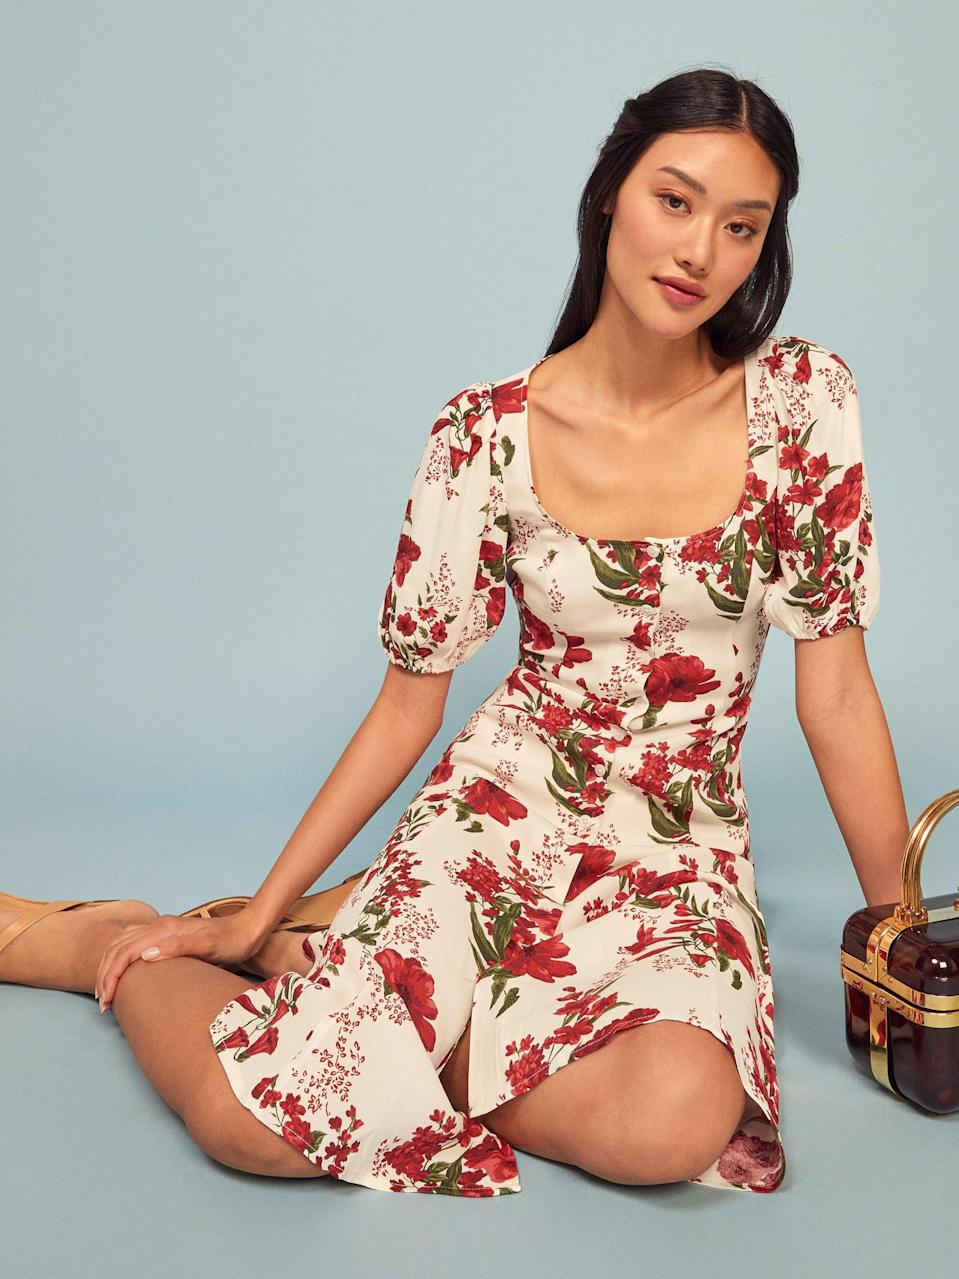 "<p>You know you want this <a href=""https://www.popsugar.com/buy/Reformation-Beechwood-Dress-552341?p_name=Reformation%20Beechwood%20Dress&retailer=thereformation.com&pid=552341&price=248&evar1=fab%3Aus&evar9=45873724&evar98=https%3A%2F%2Fwww.popsugar.com%2Ffashion%2Fphoto-gallery%2F45873724%2Fimage%2F47262120%2FReformation-Beechwood-Dress&list1=shopping%2Cdresses%2Cspring%2Cflorals%2Cspring%20fashion&prop13=mobile&pdata=1"" class=""link rapid-noclick-resp"" rel=""nofollow noopener"" target=""_blank"" data-ylk=""slk:Reformation Beechwood Dress"">Reformation Beechwood Dress</a> ($248).</p>"